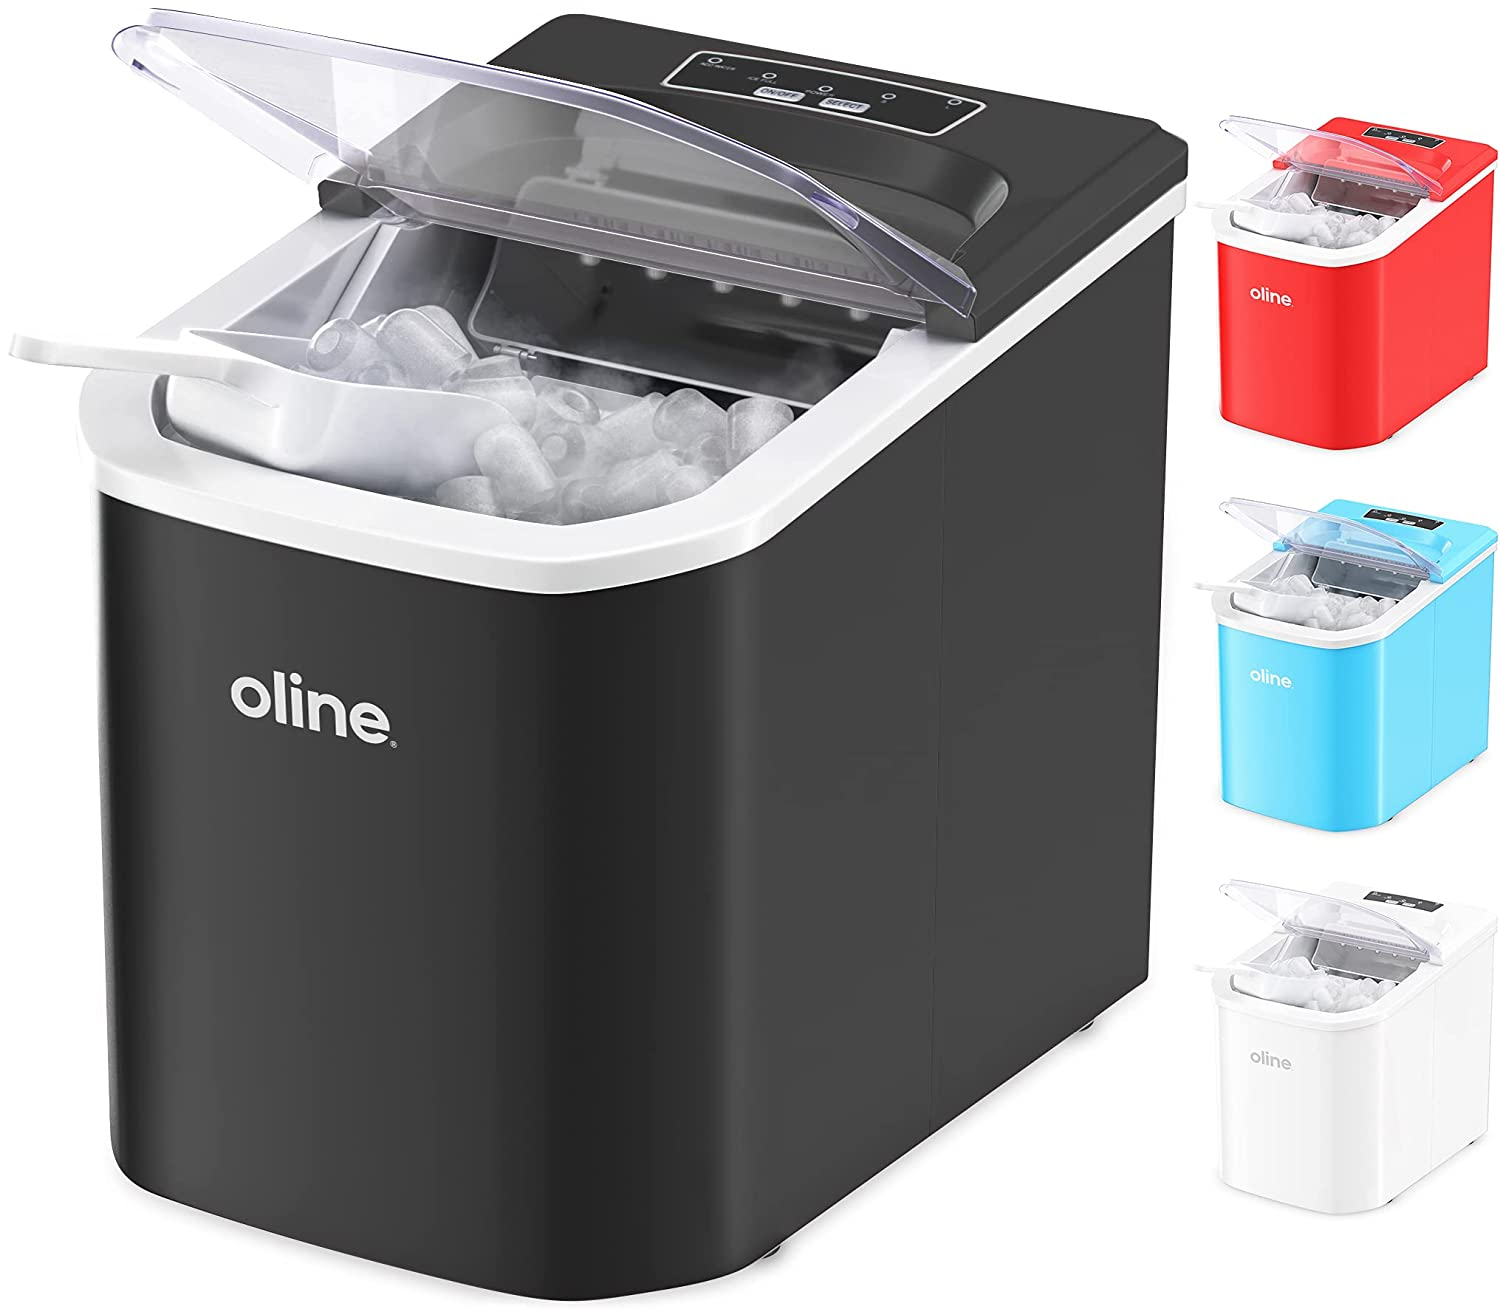 Oline Ice Maker Machine, Automatic Self-Cleaning Portable Electric Countertop Ice Maker, 26 Pounds in 24 Hours, 9 Ice Cubes Ready in 7 Minutes, with Ice Scoop & Basket (Black)